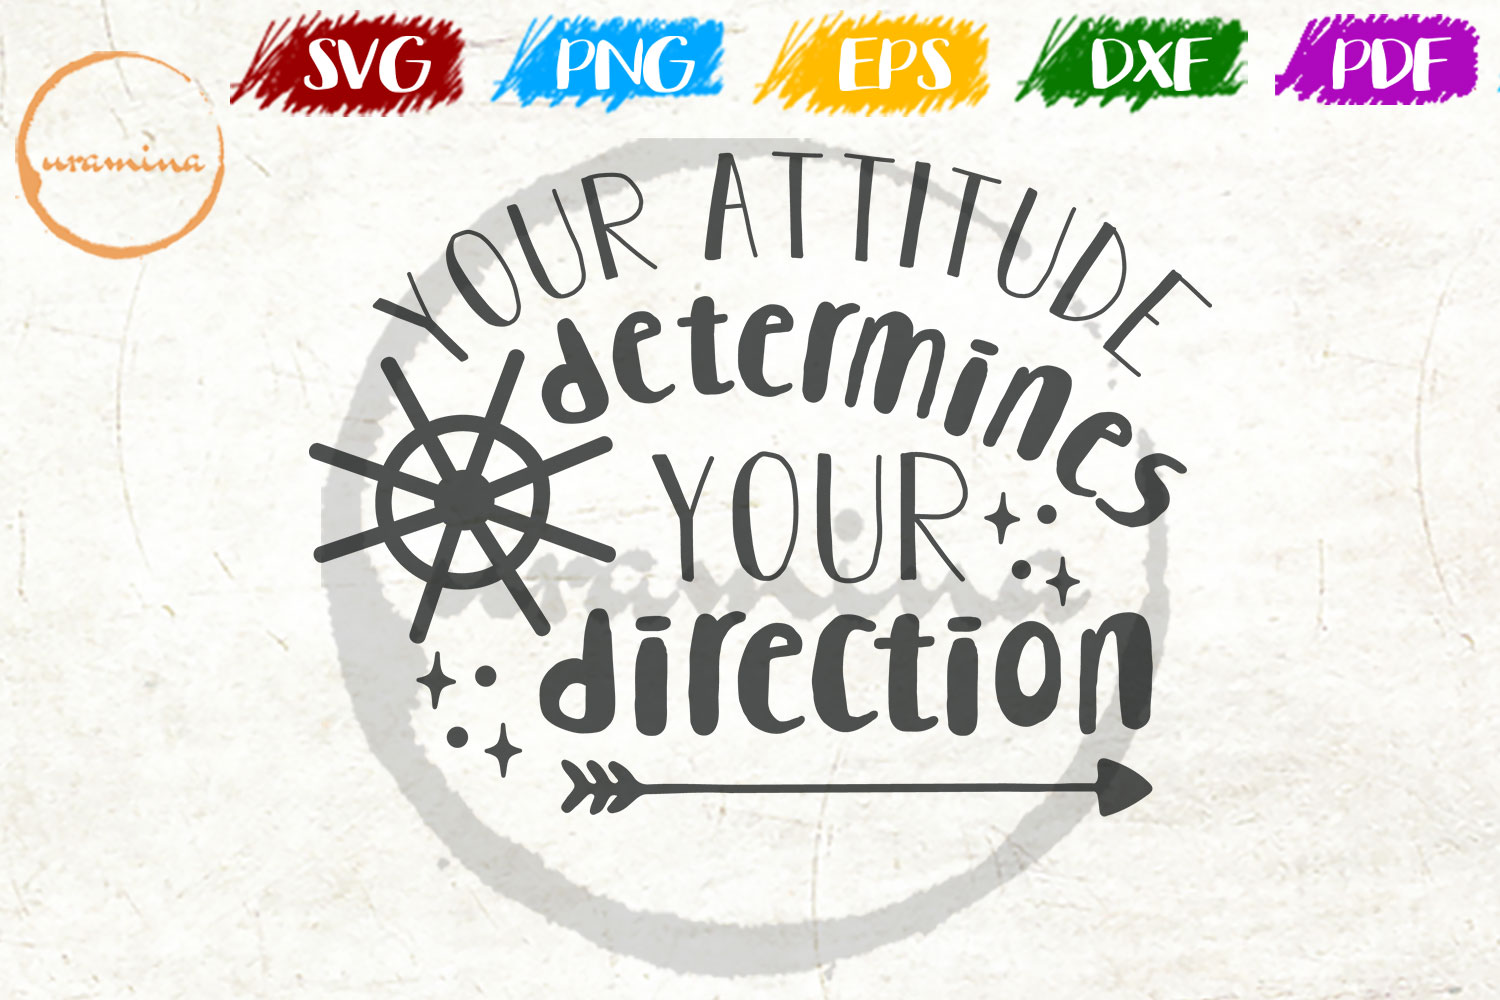 Download Free Your Attitude Determines Your Direction Graphic By Uramina SVG Cut Files